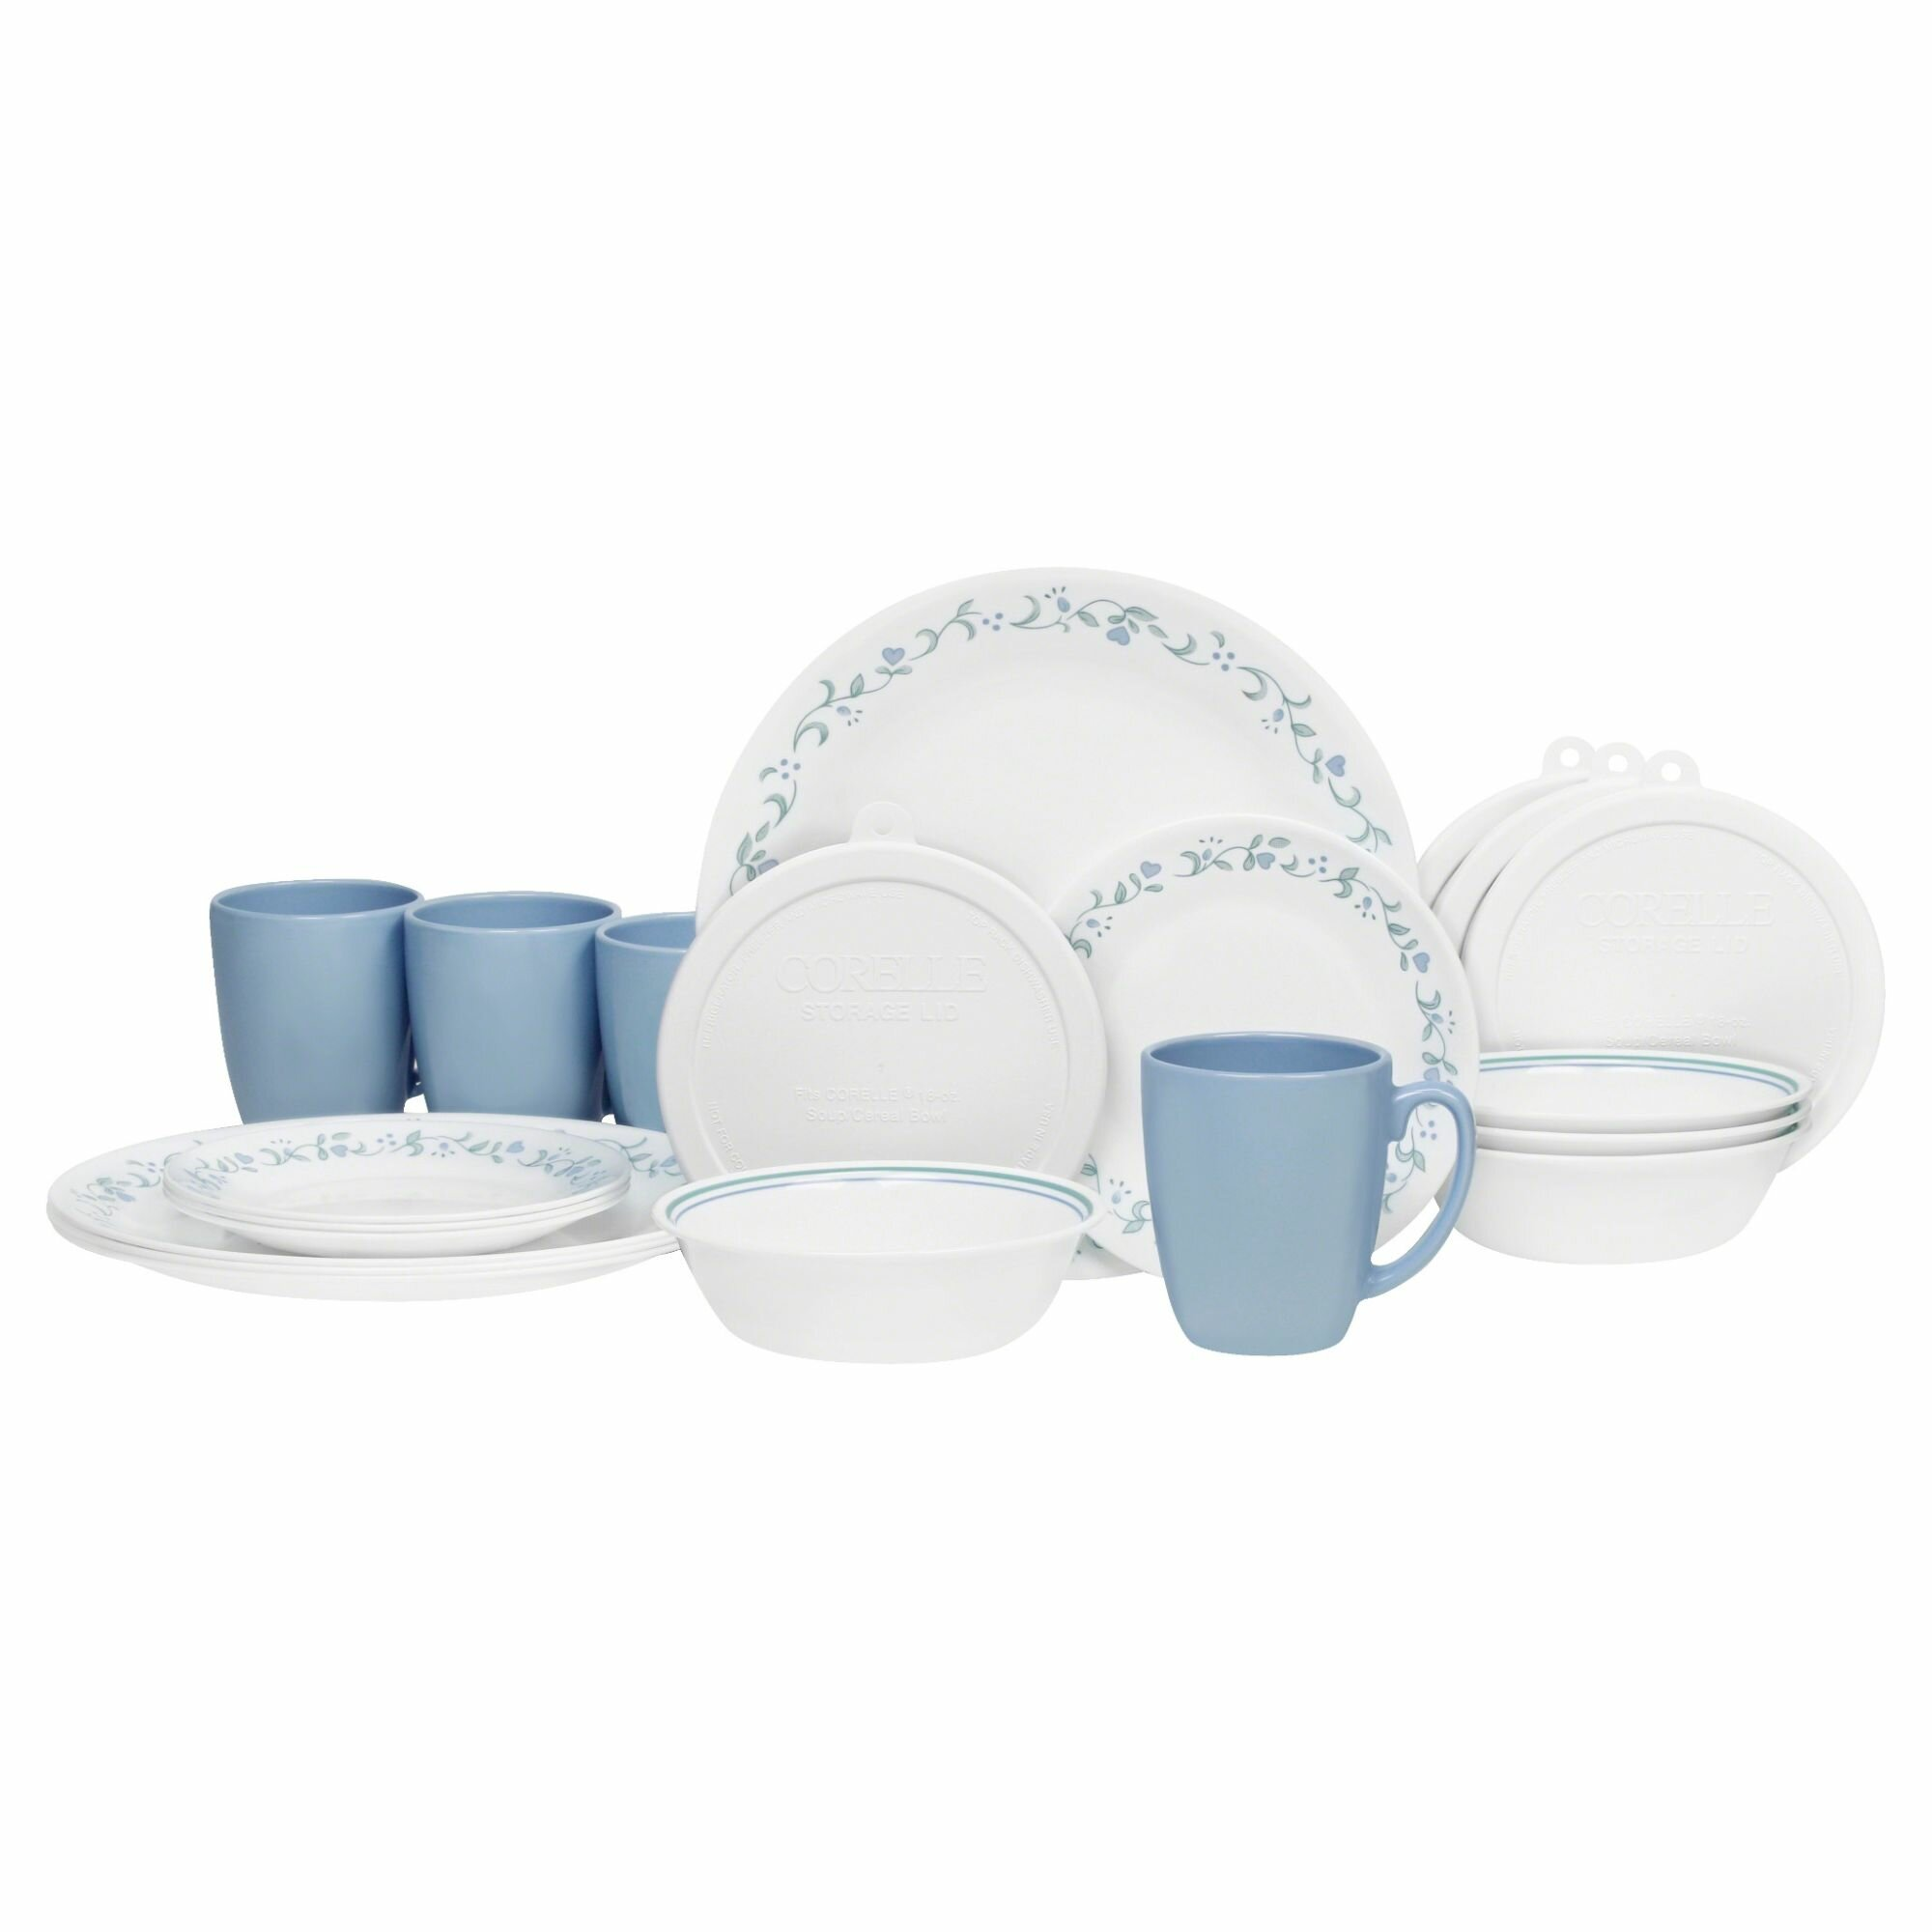 dinnerware and cottages pyrex cheap inside sets dishes on pinterest cottage best country corelle images